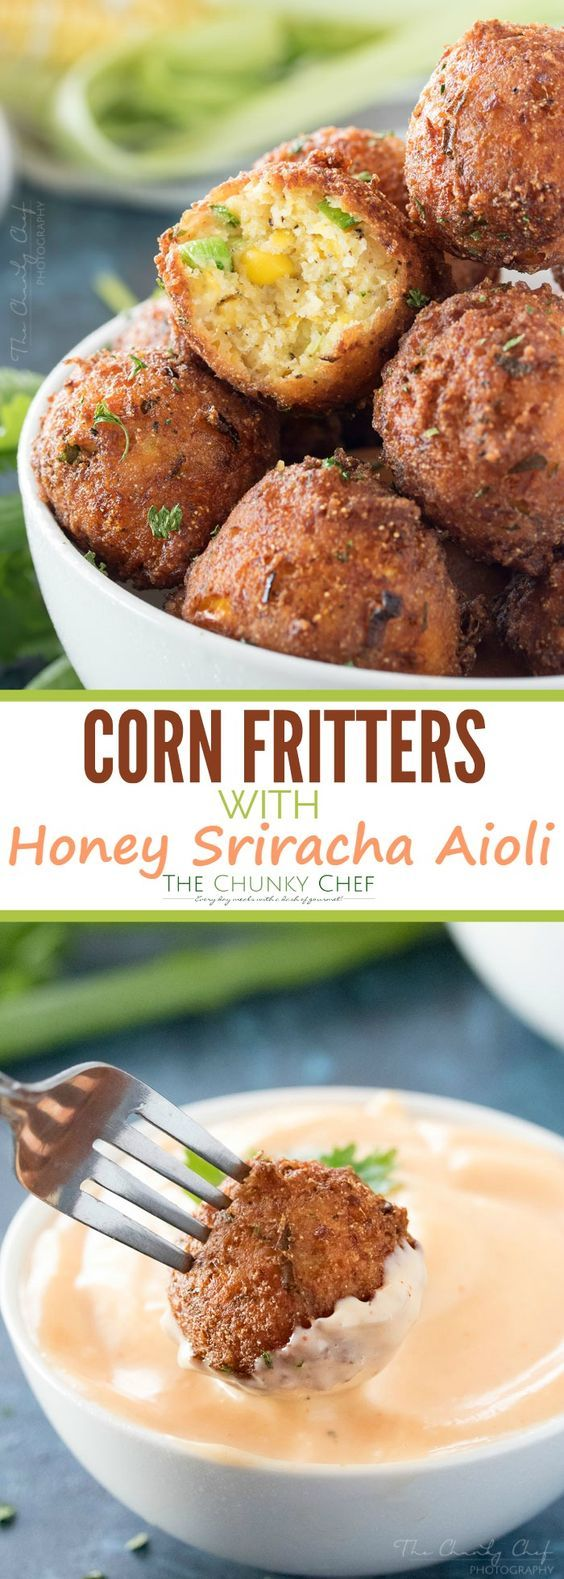 Photo of Sweet Corn Fritters with a Spicy Aioli – The Chunky Chef